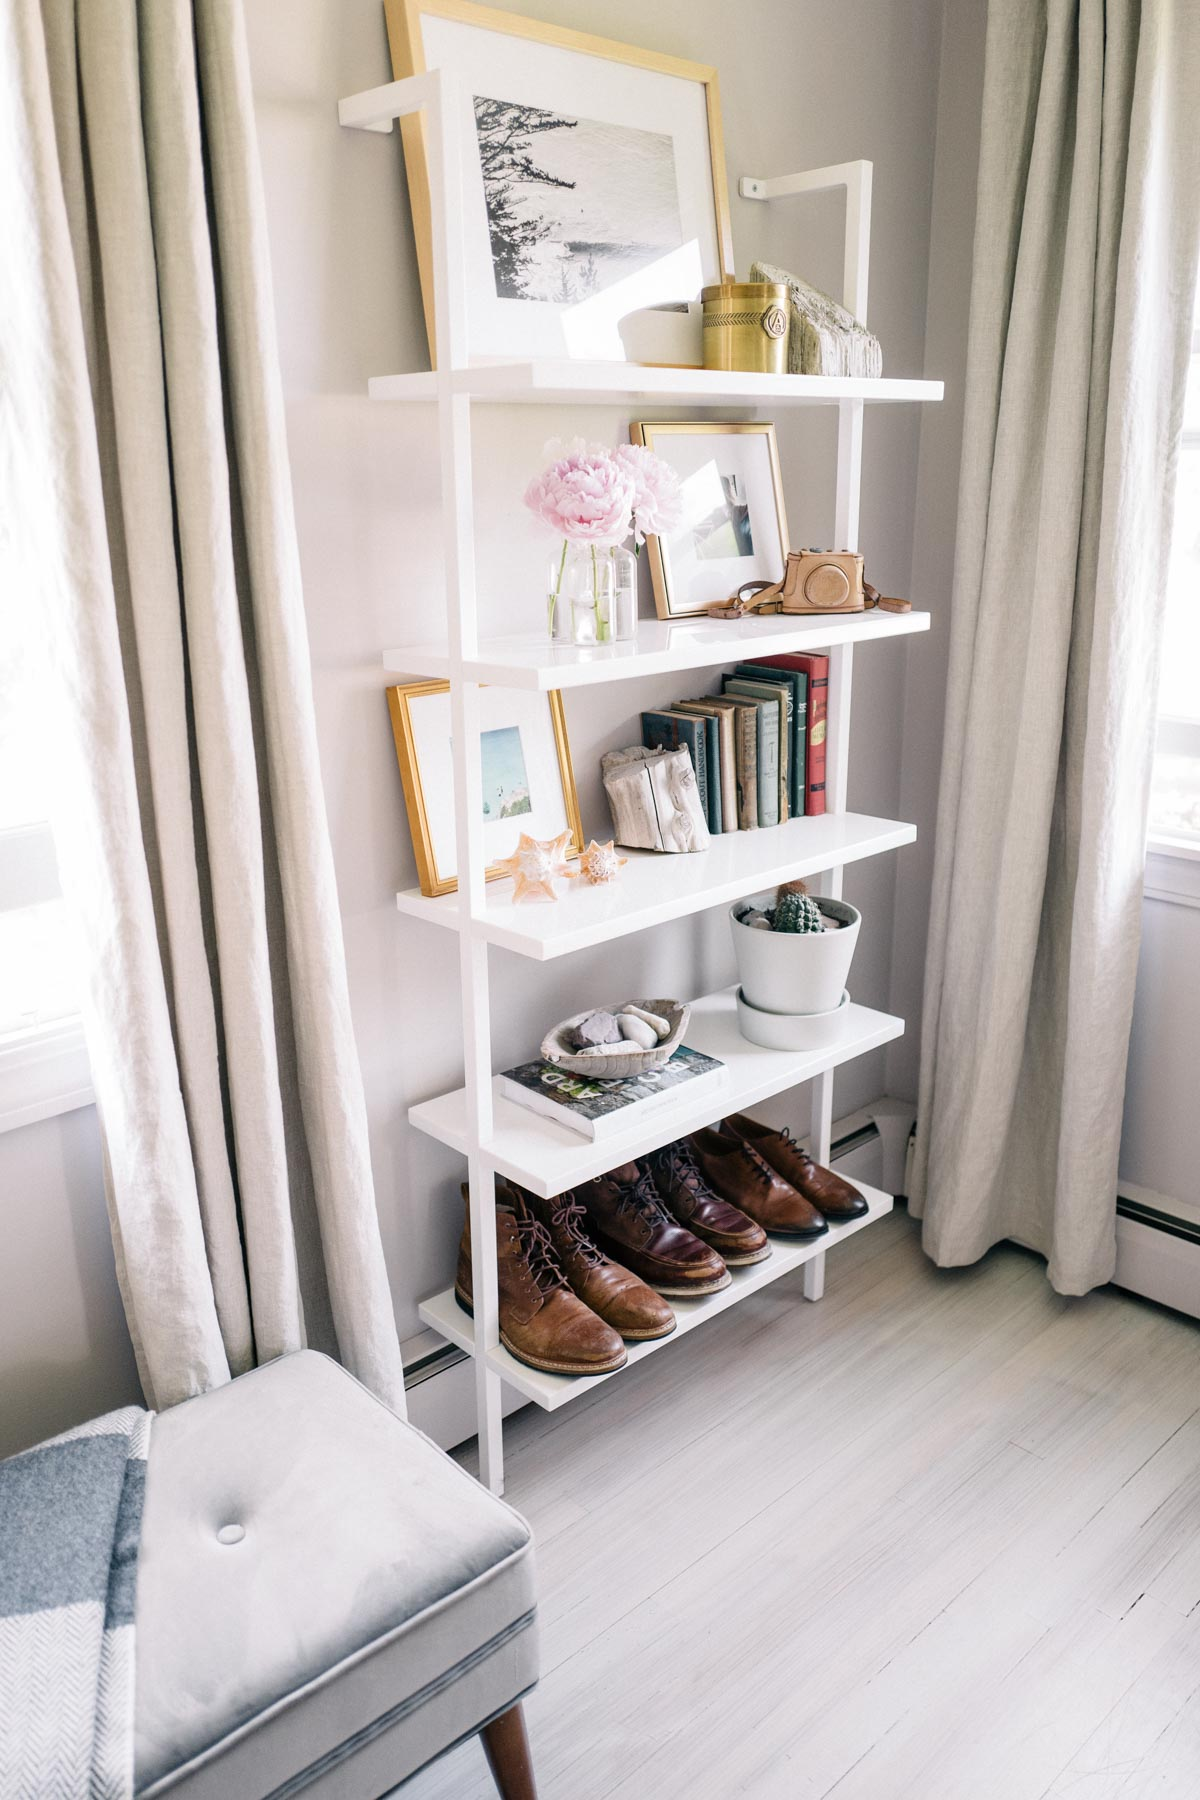 Jess Ann Kirby styled CB2 wall mount shelves with books, shoes and pieces of art